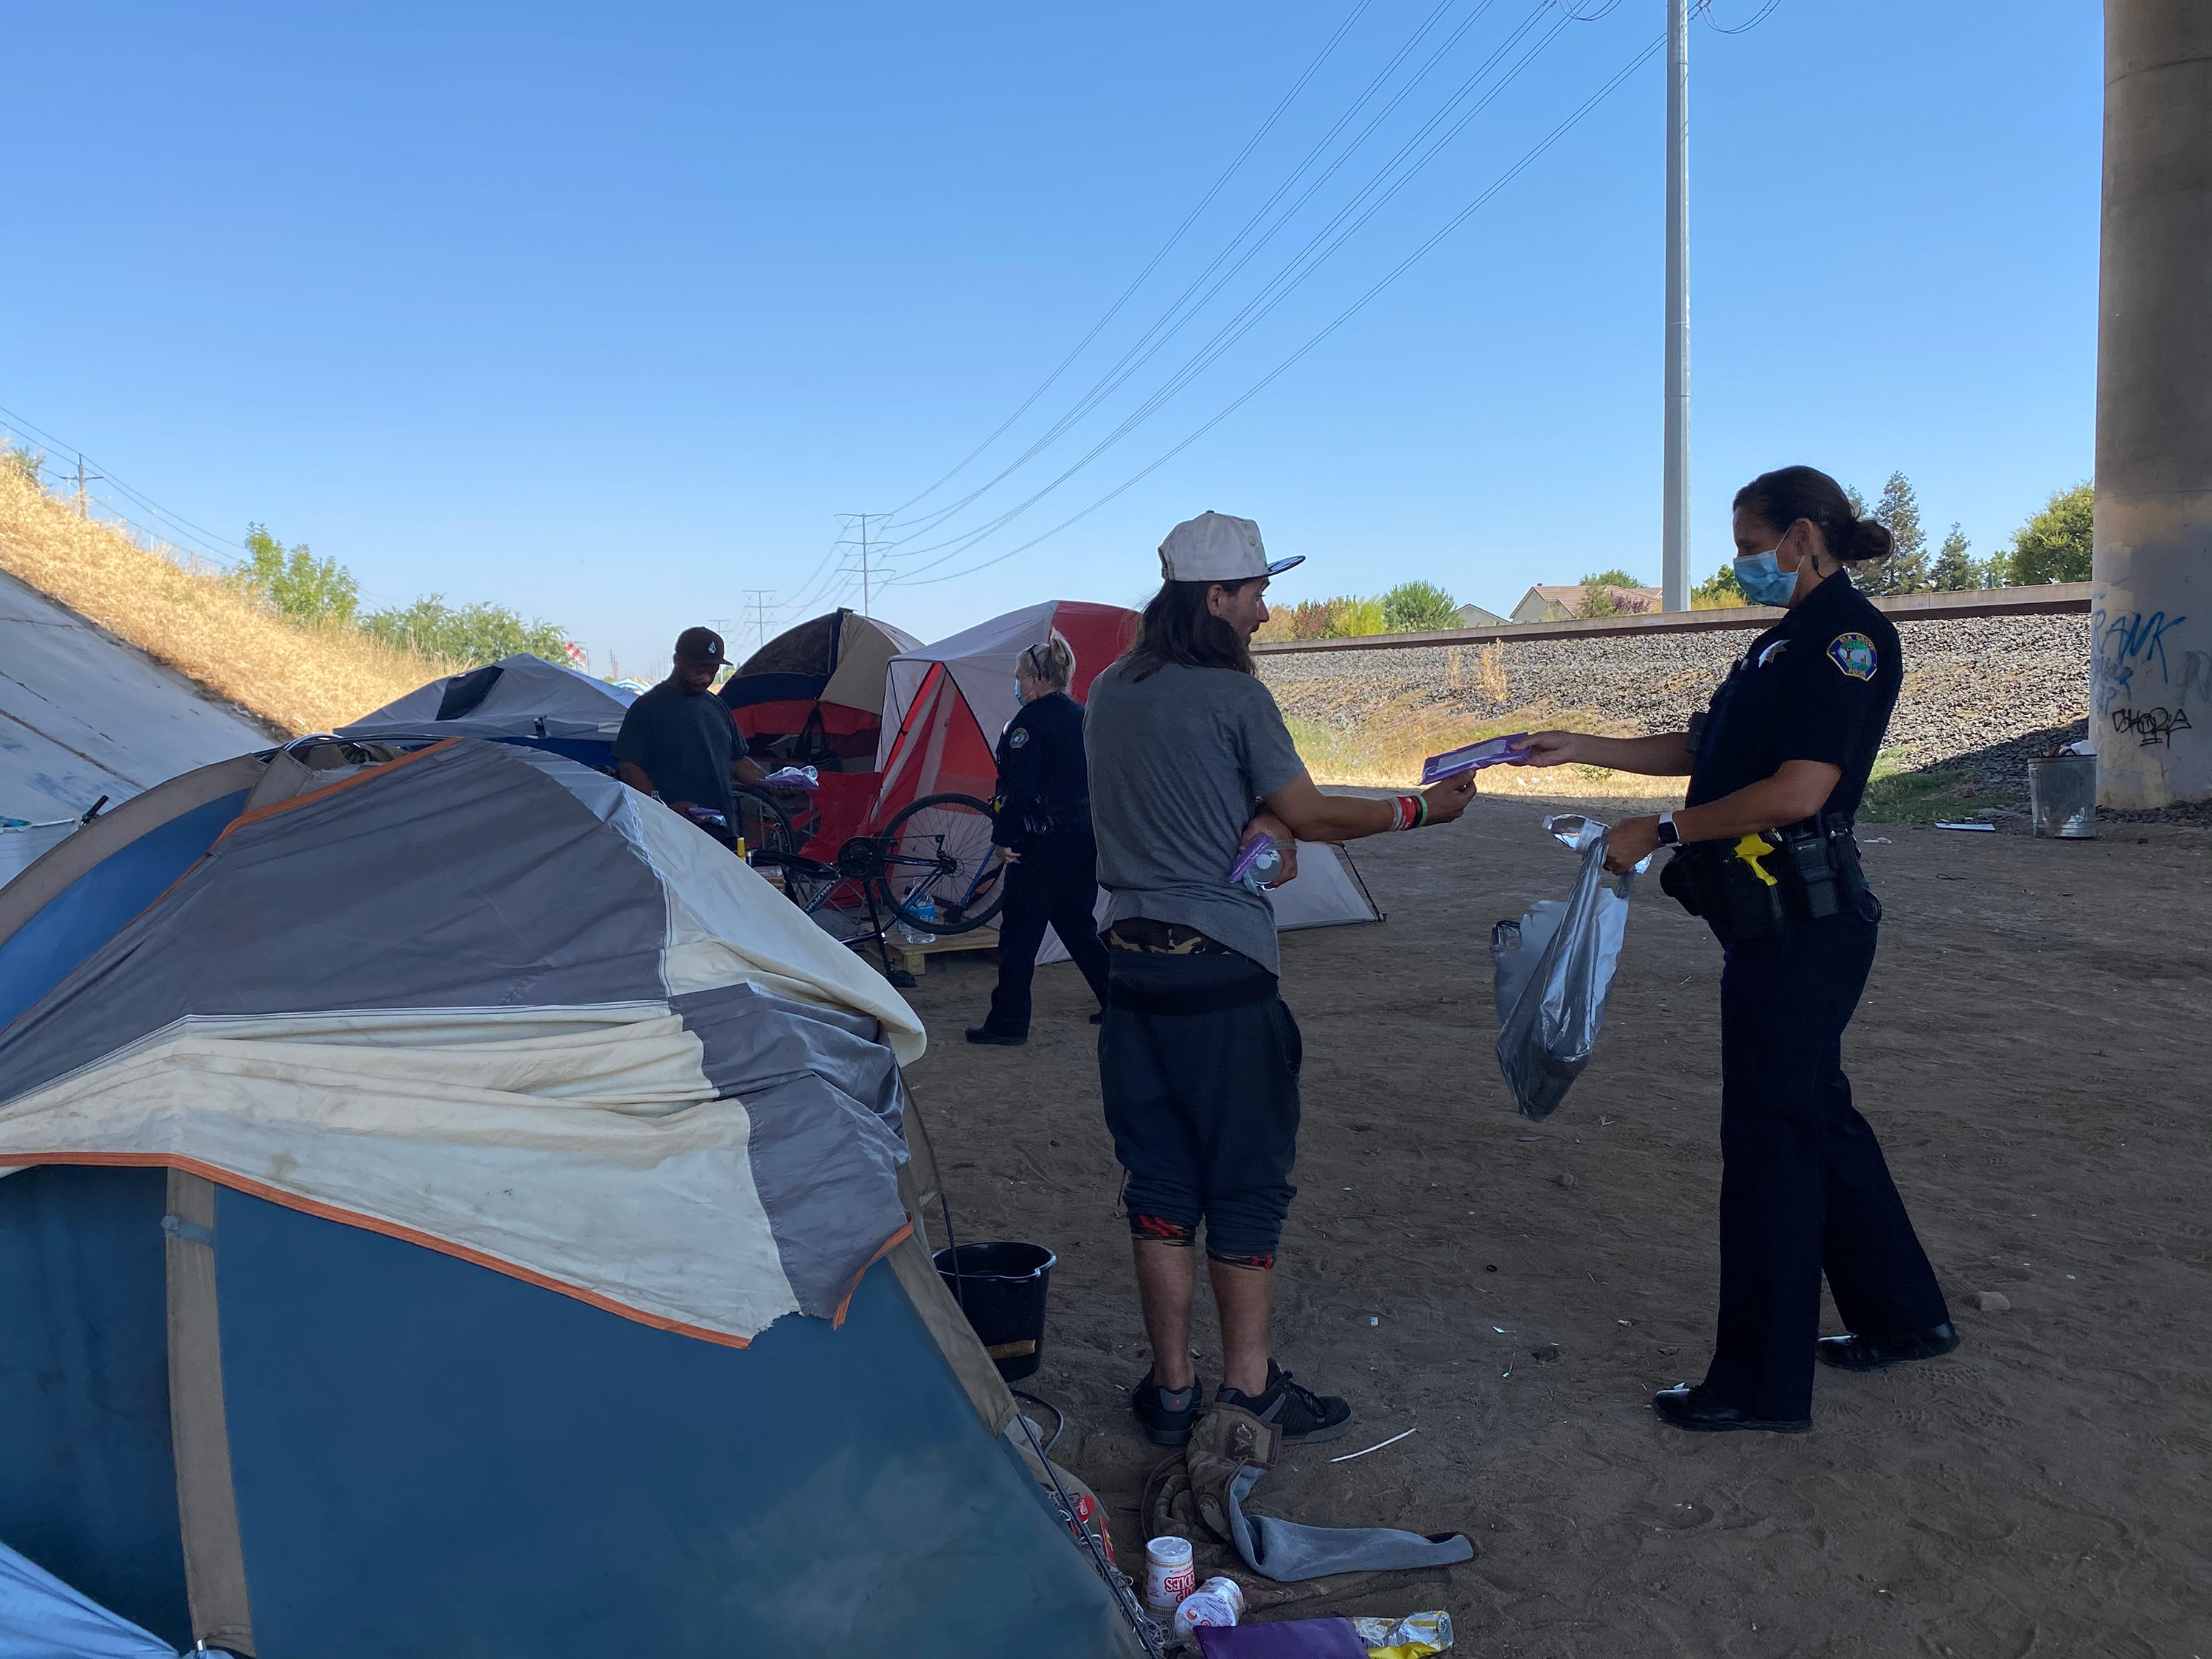 A California town is paying its homeless to clean their encampment sites